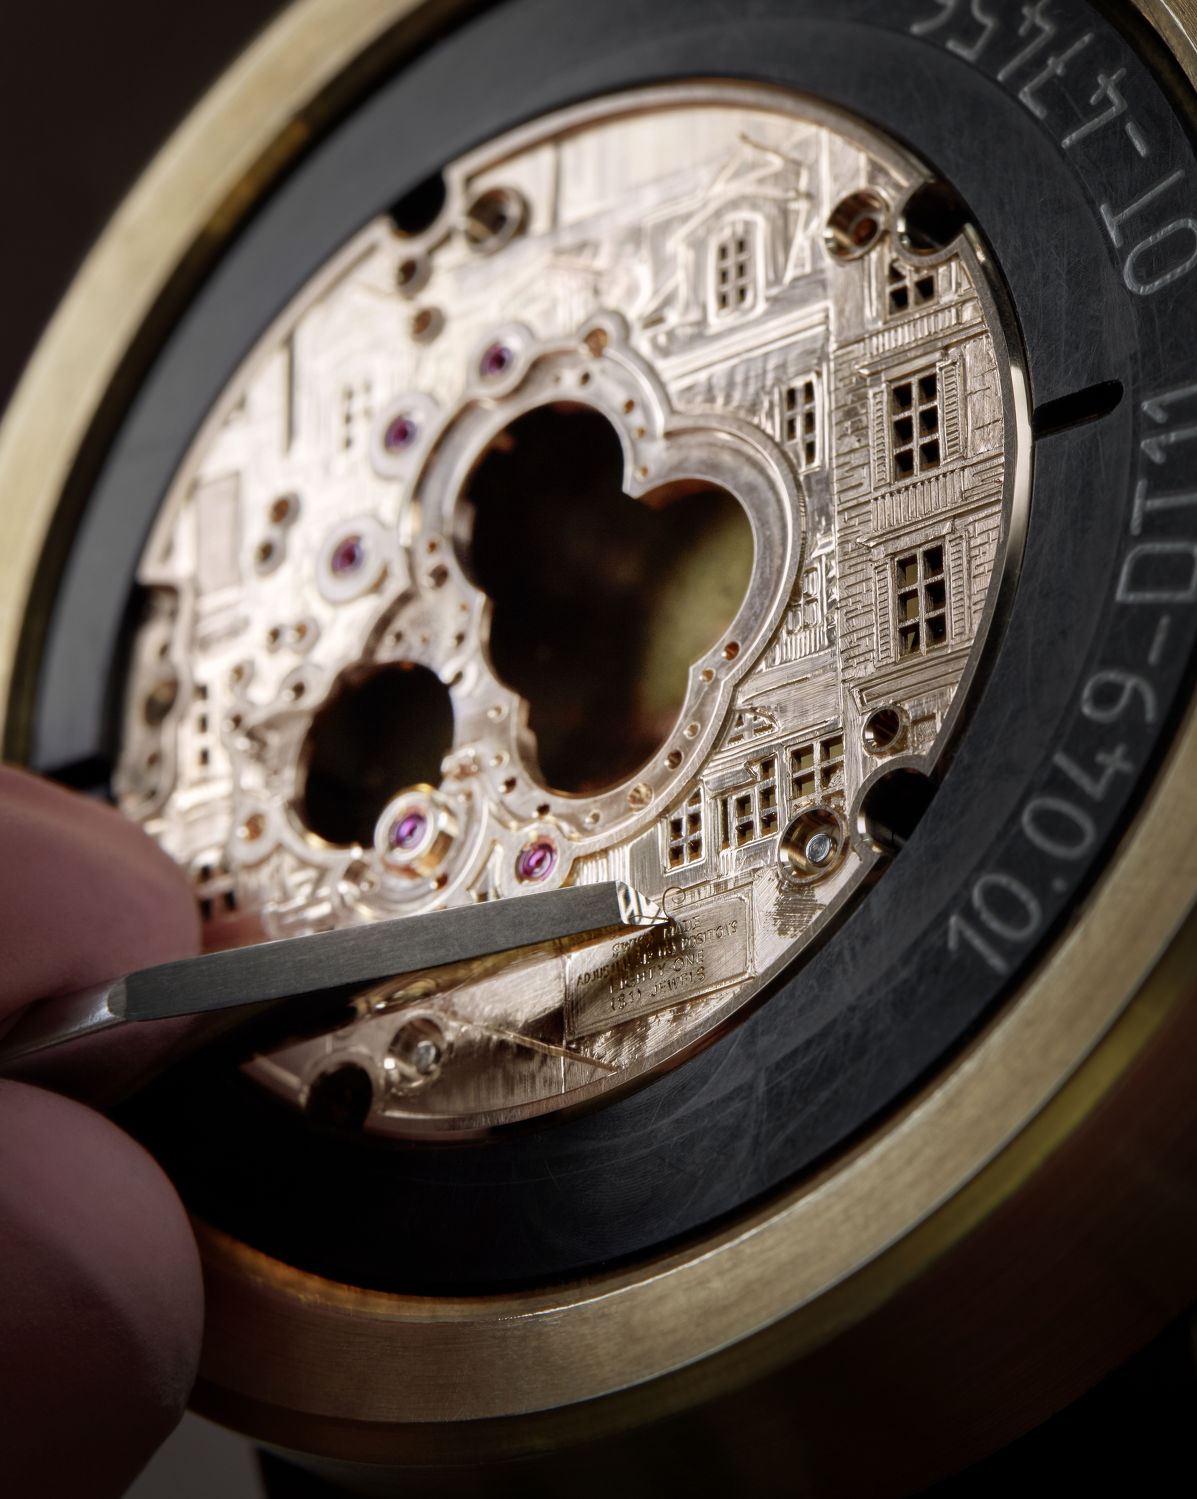 Breguet engraving-on-gold - THE EDGE SINGAPORE